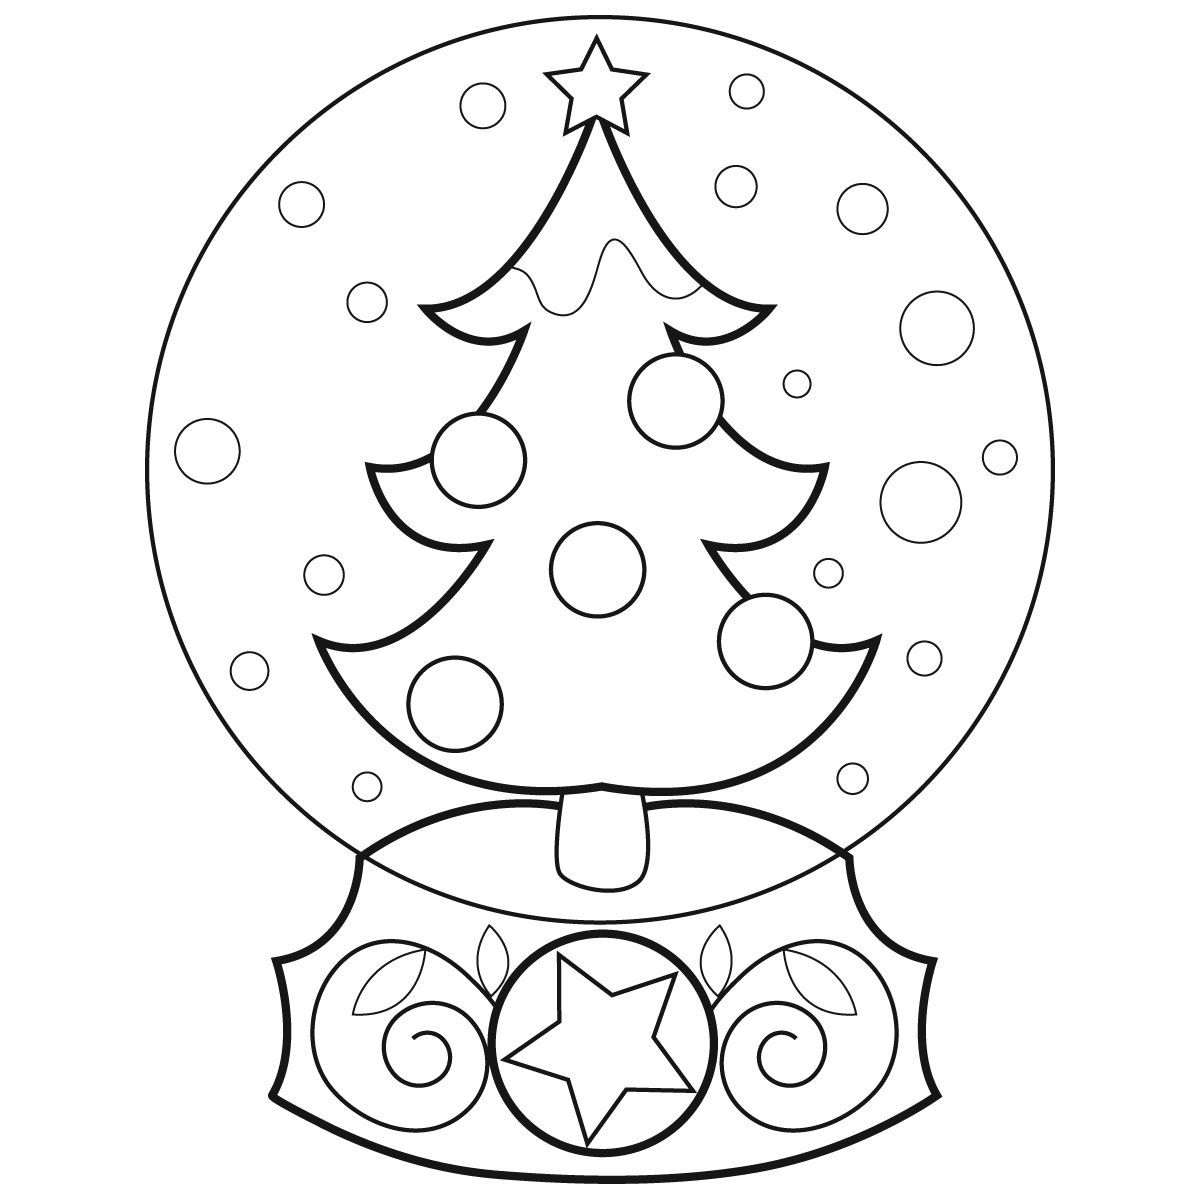 1200x1200 Globe Coloring Page Printable Free Coloring Pages